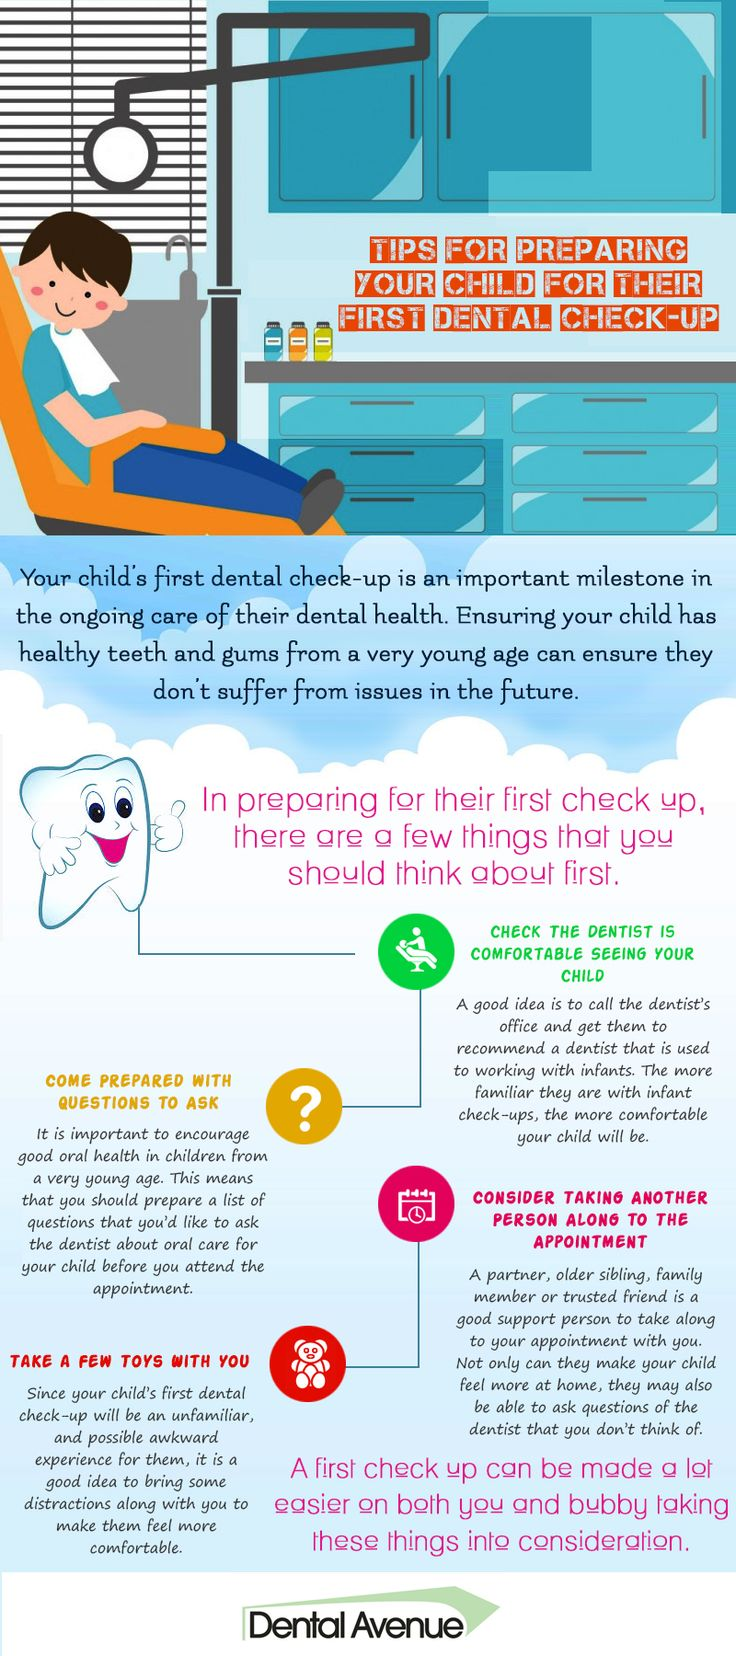 Before taking your child to a dentist for first #dental check-up, keep in mind these basic tips to ensure his/her safety and comfort. Go through this info-graphic and read the tips.